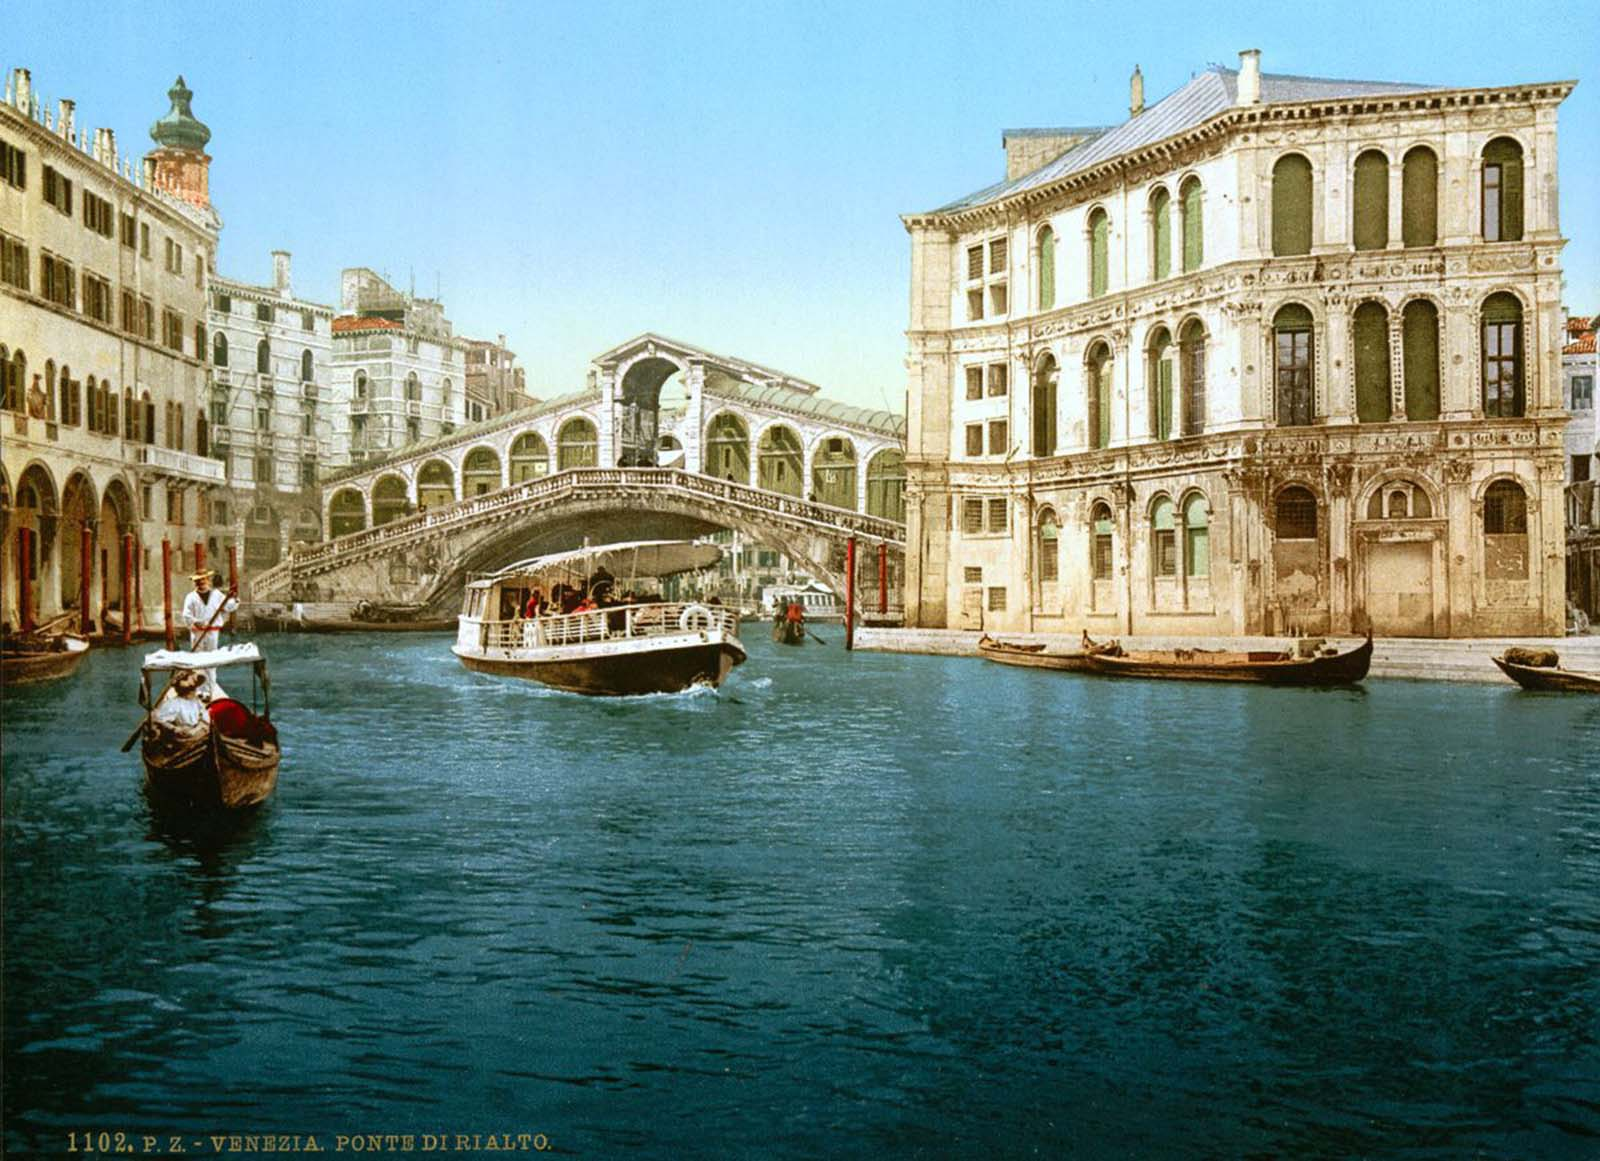 venice-in-beautiful-old-color-images-1890_16.jpg